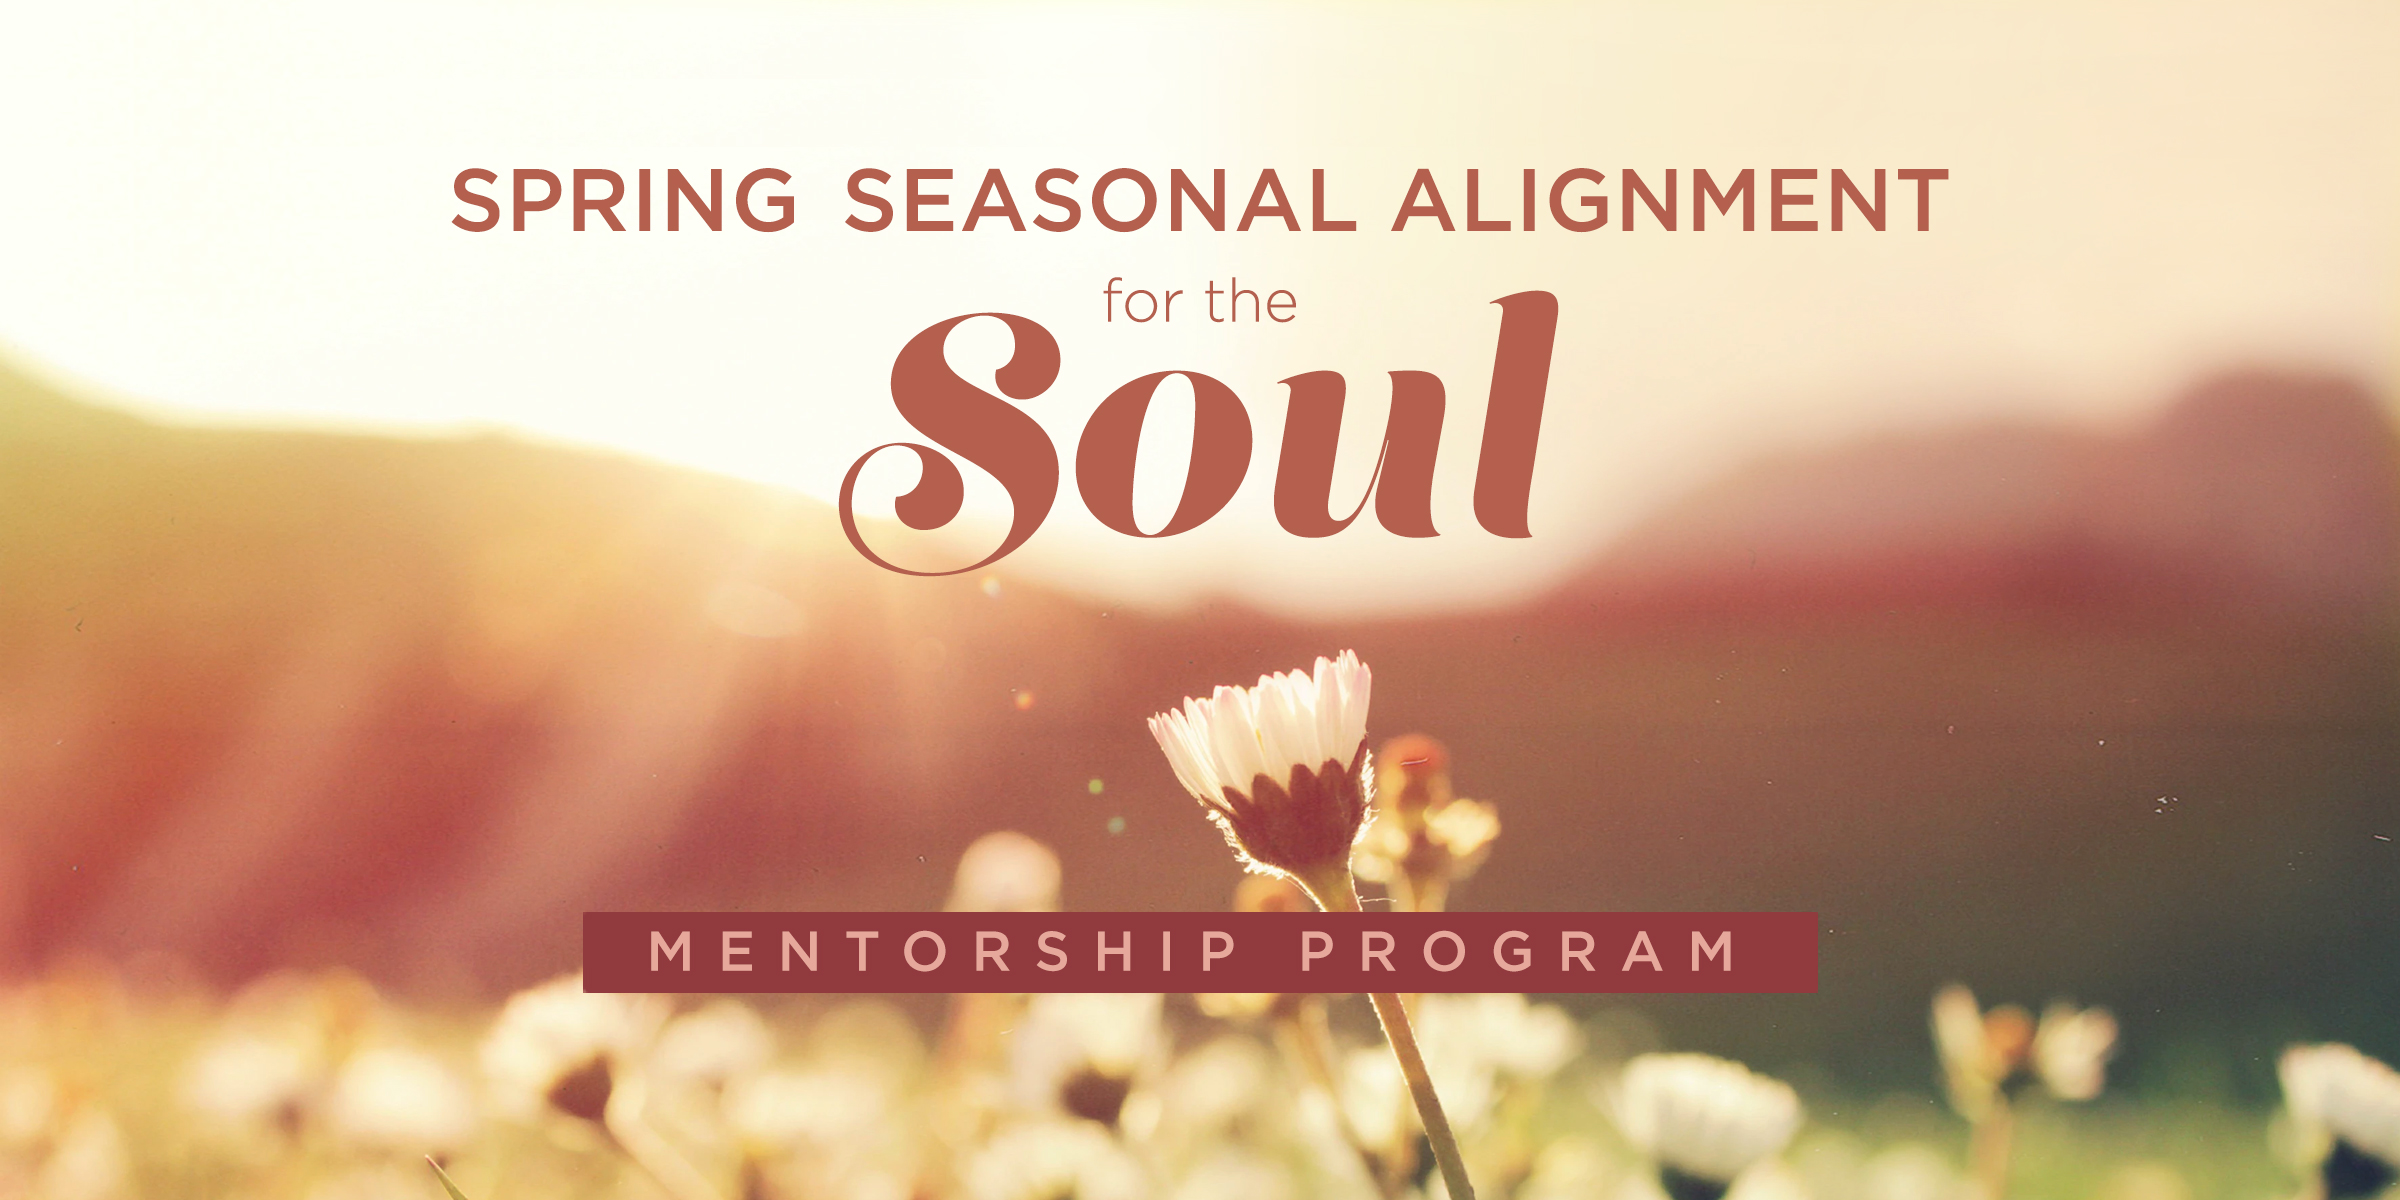 Spring Seasonal Alignment for the Soul